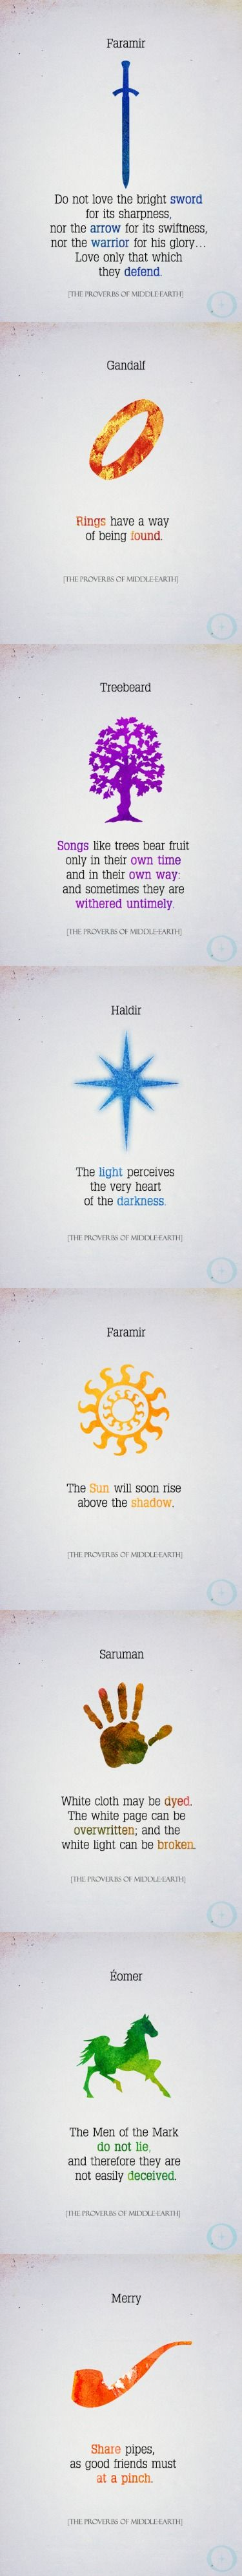 The Proverbs of Middle-Earth. Faramir's first one, though. <3: